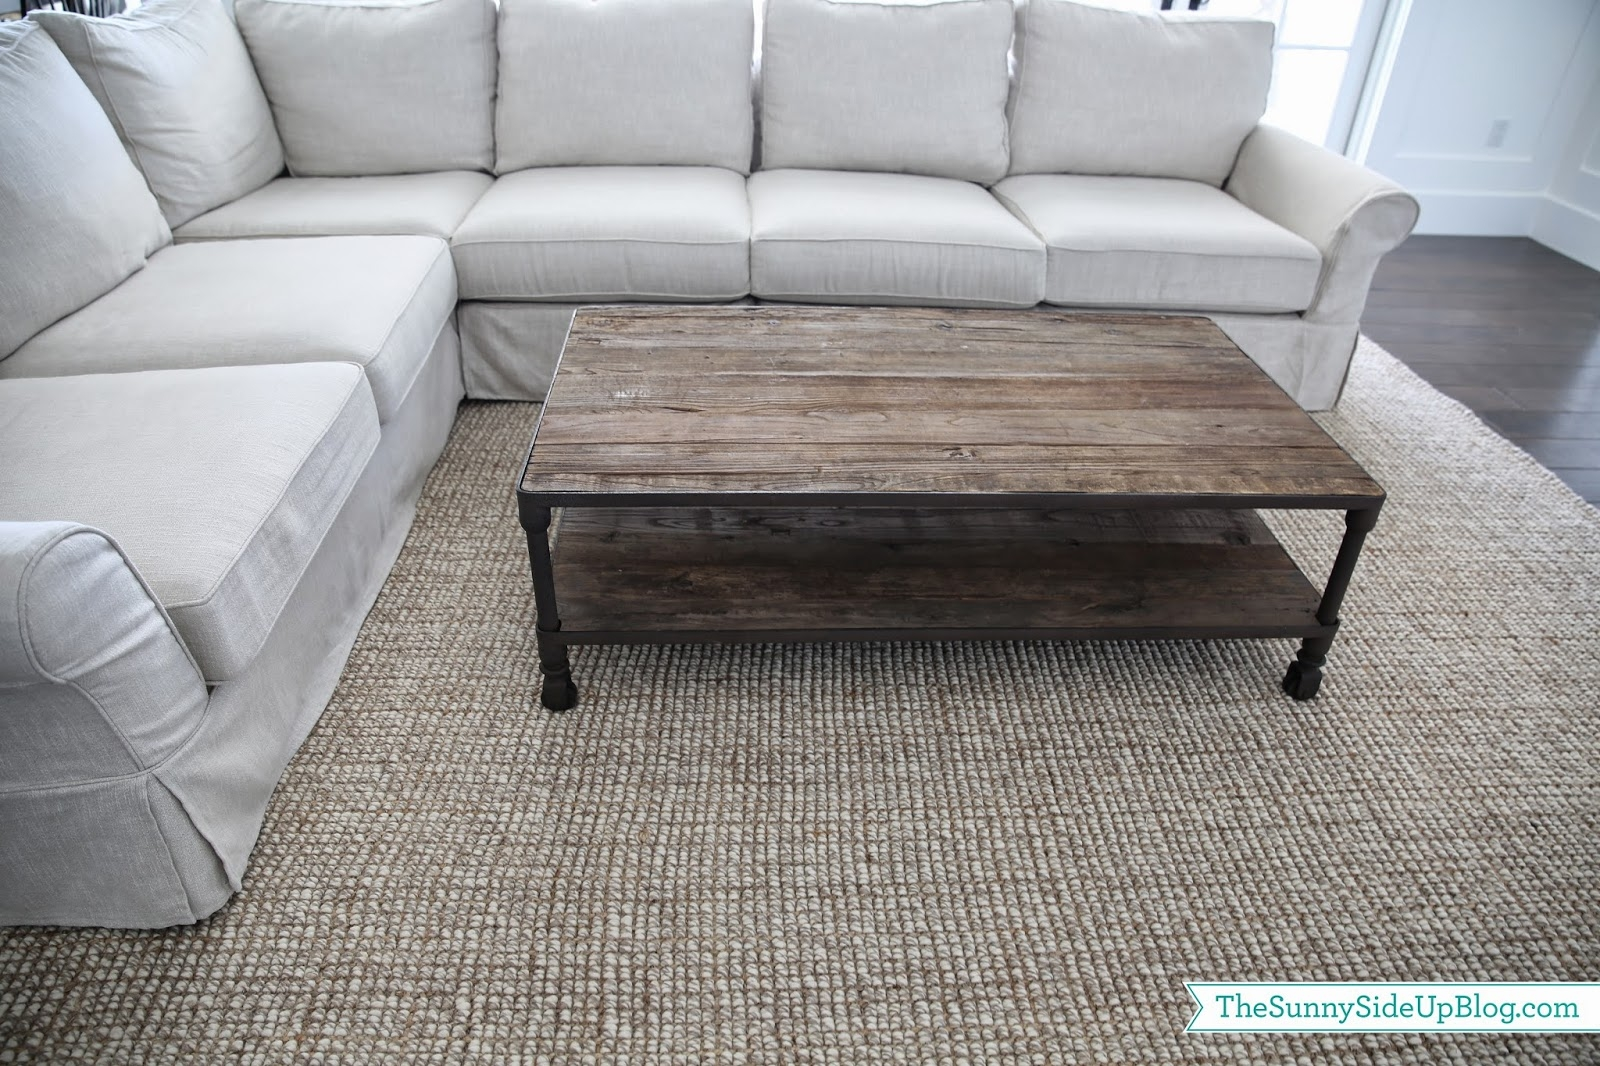 Family Room Decor Update The Sunny Side Up Blog With Regard To Wool Jute Area Rugs (#5 of 15)